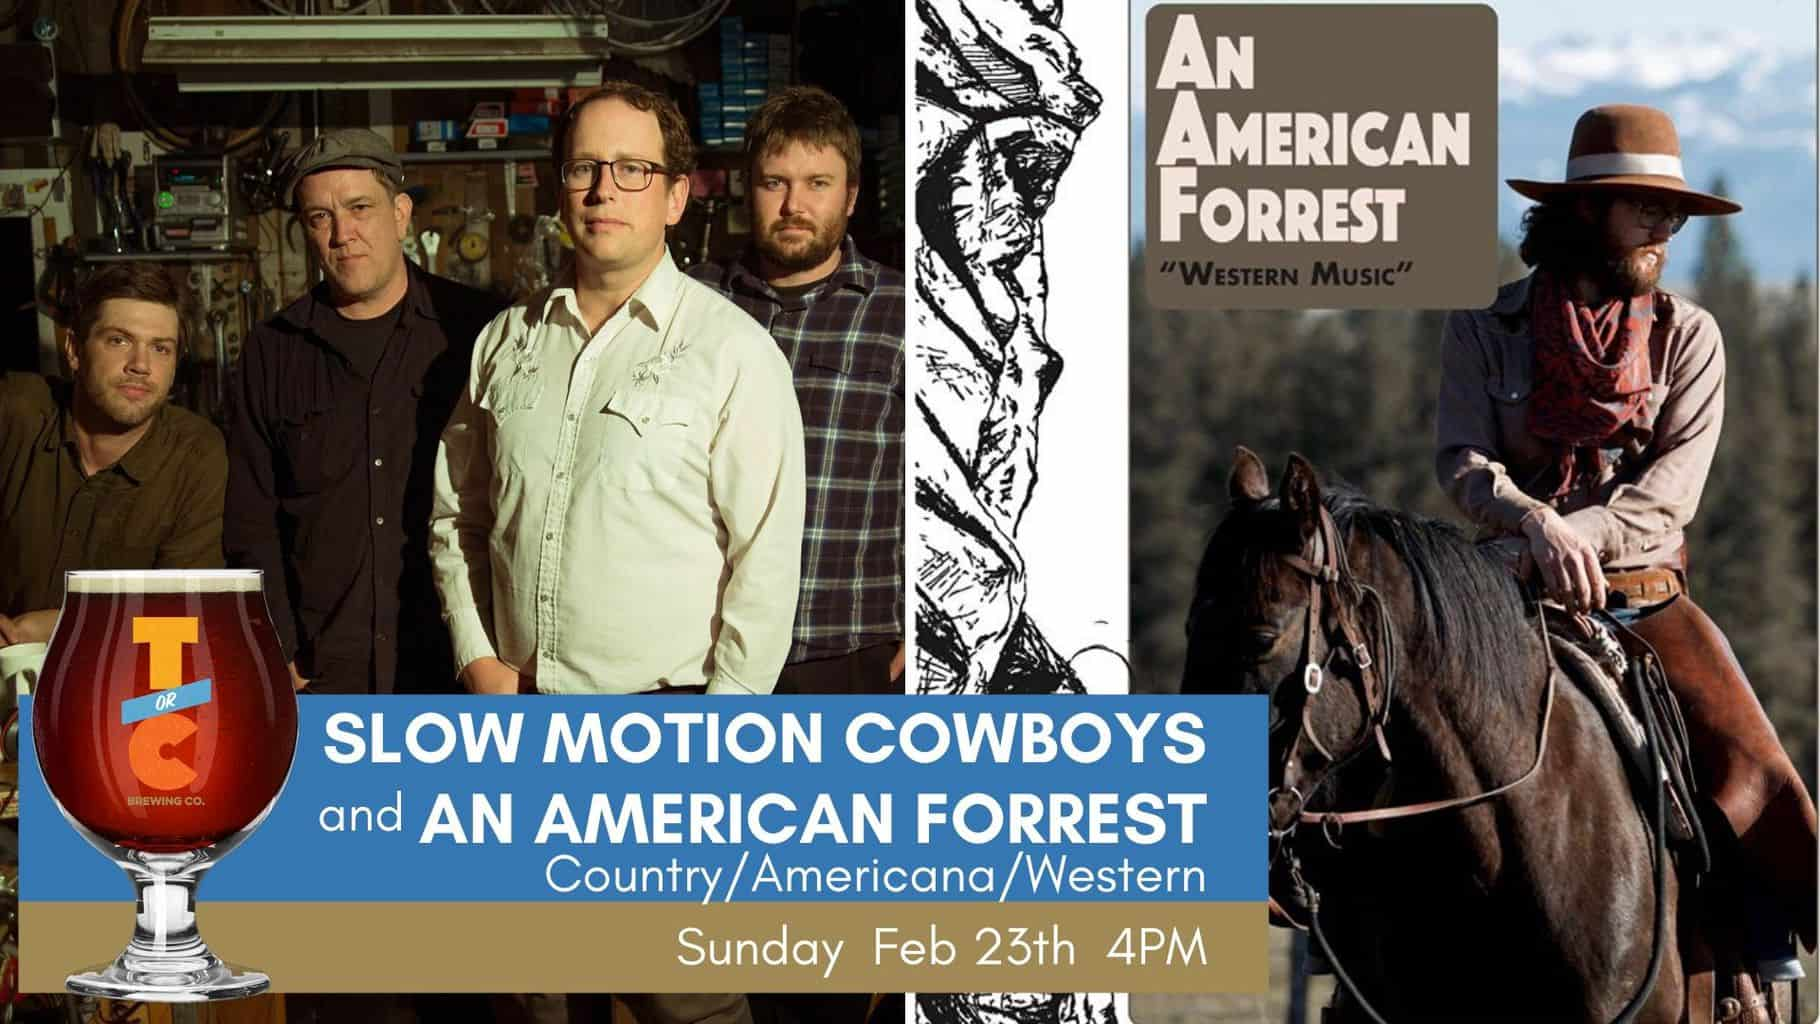 Slow Motion Cowboys & An American Forrest